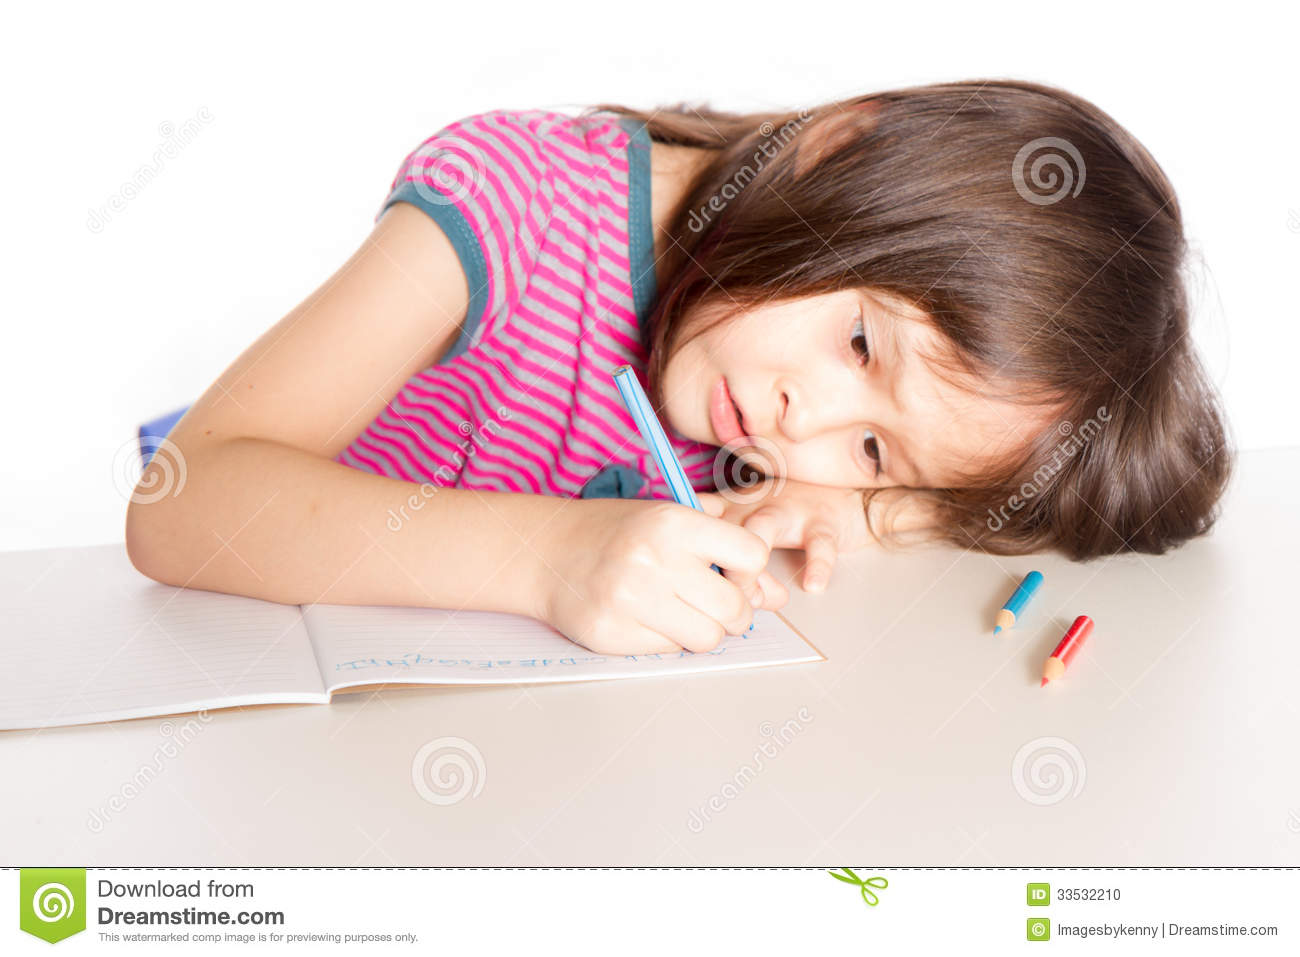 Ambidextrous Kids in the Classroom